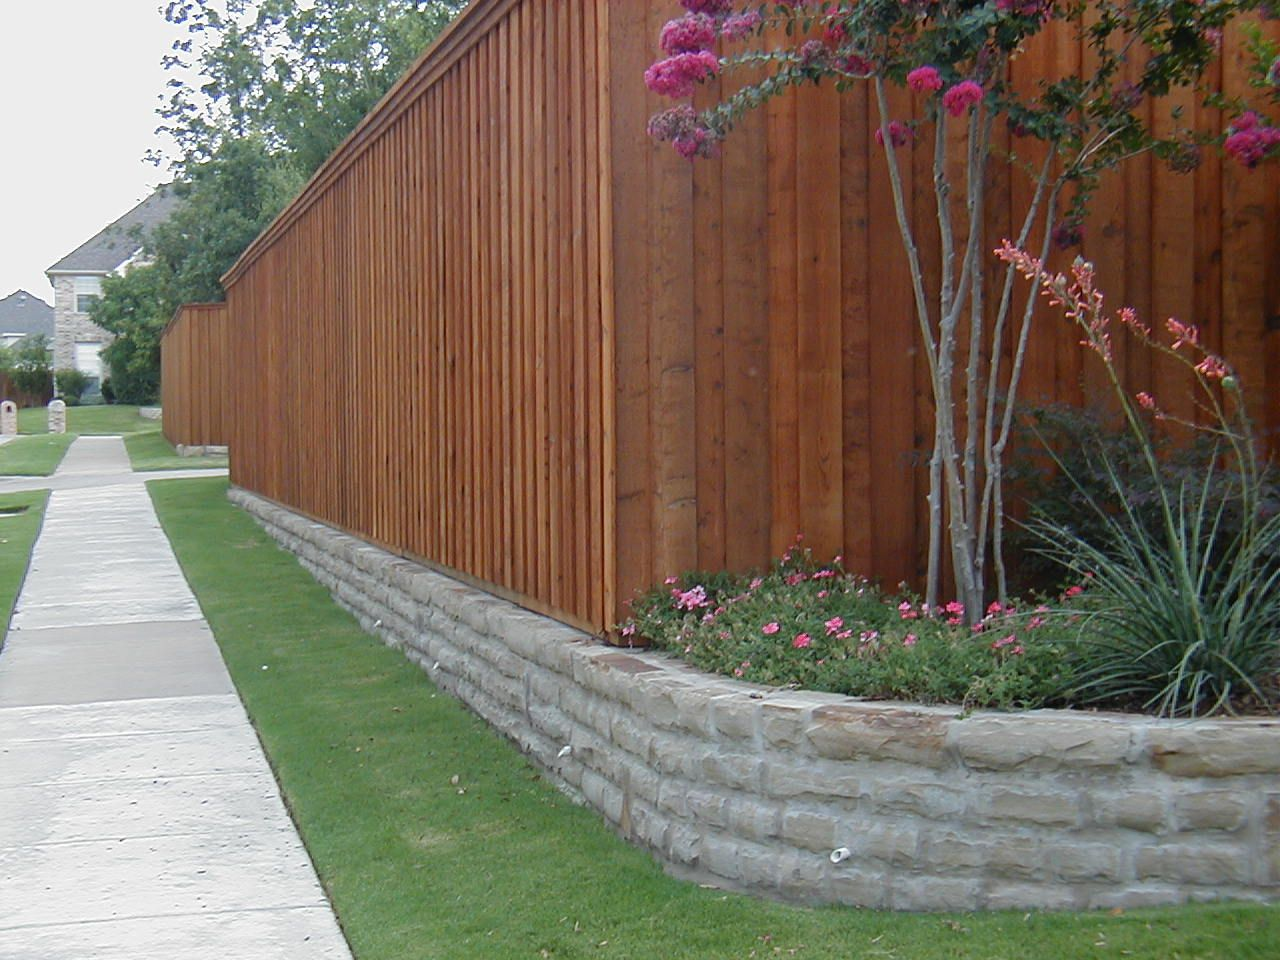 Your Permit Solution Fence And Retaining Wall Permit Landscaping Retaining Walls Backyard Fences Retaining Wall Fence